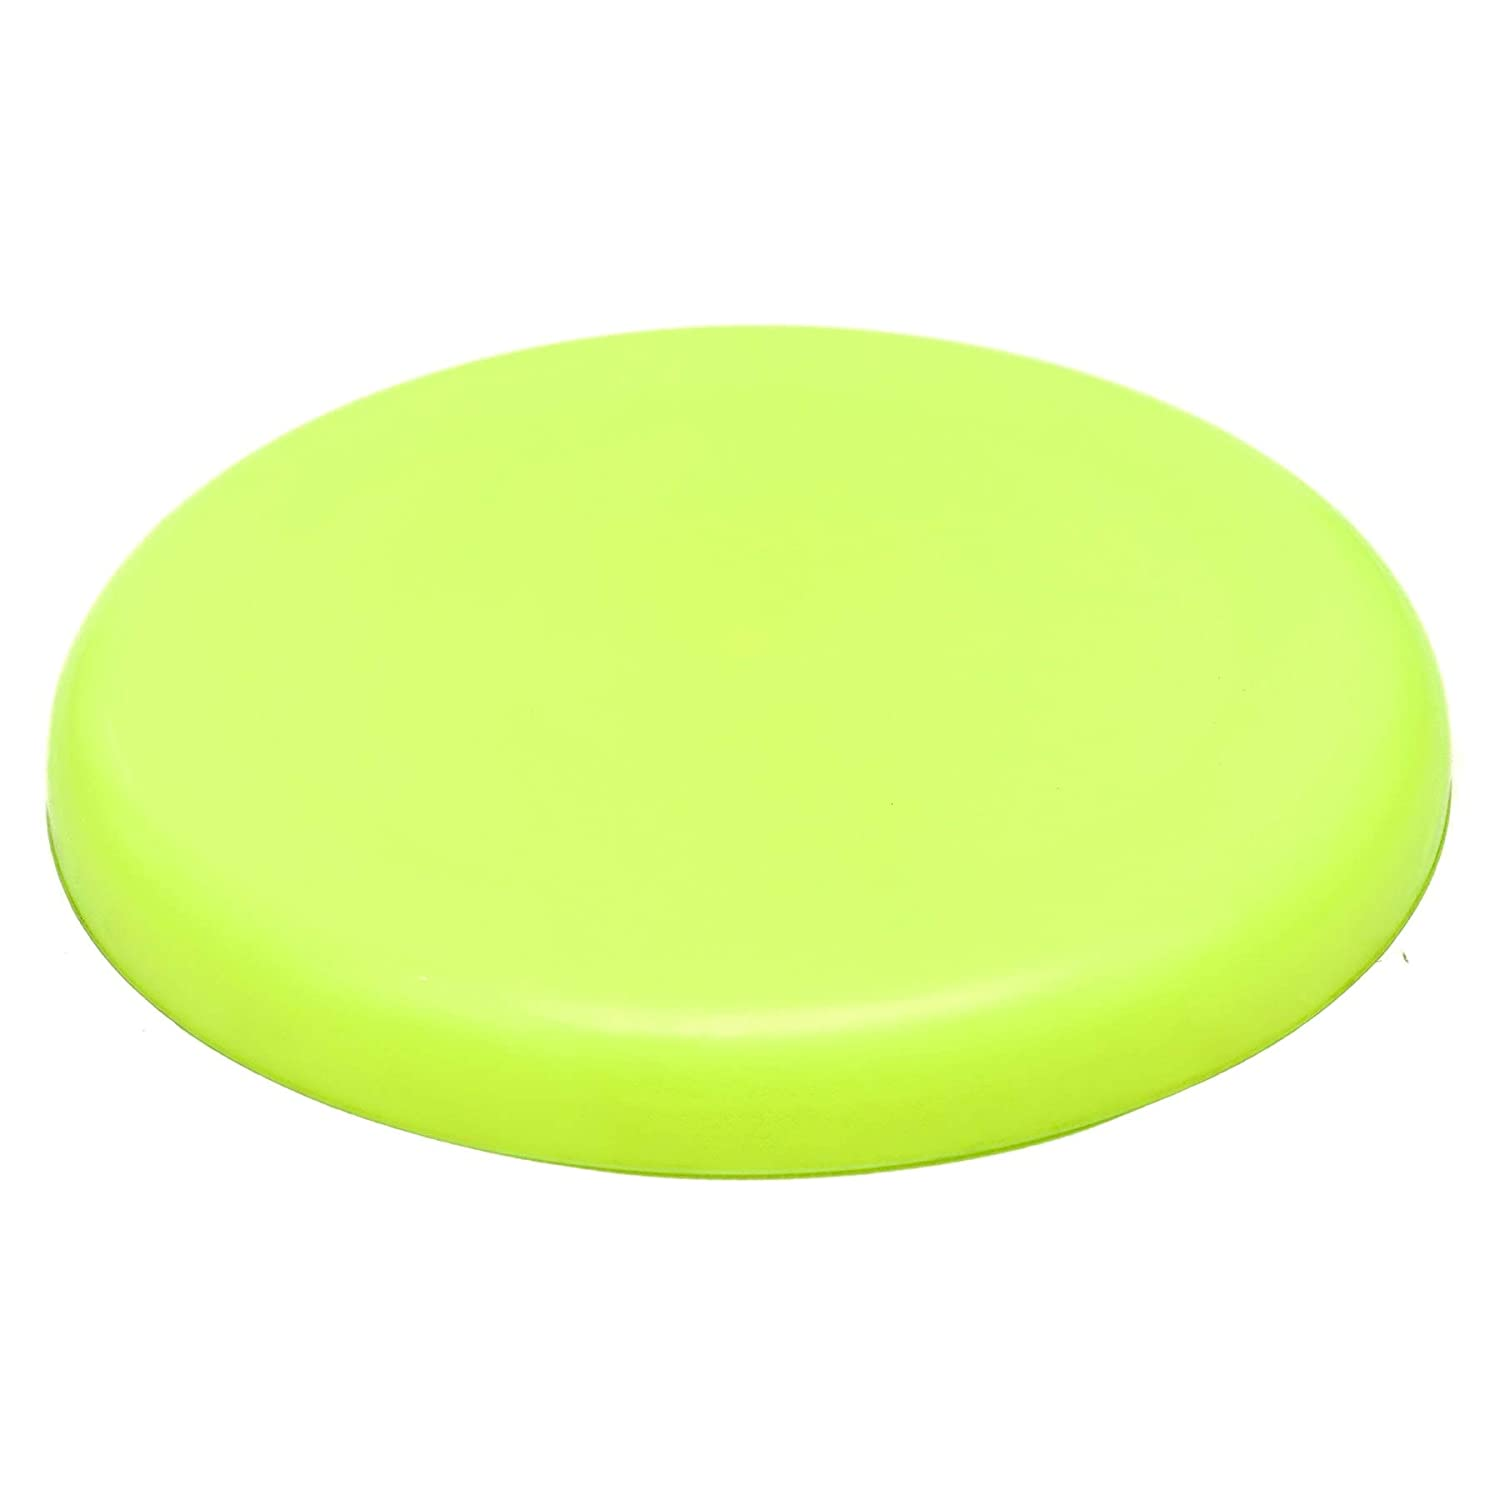 Frisbee - 9 Inches (Green)